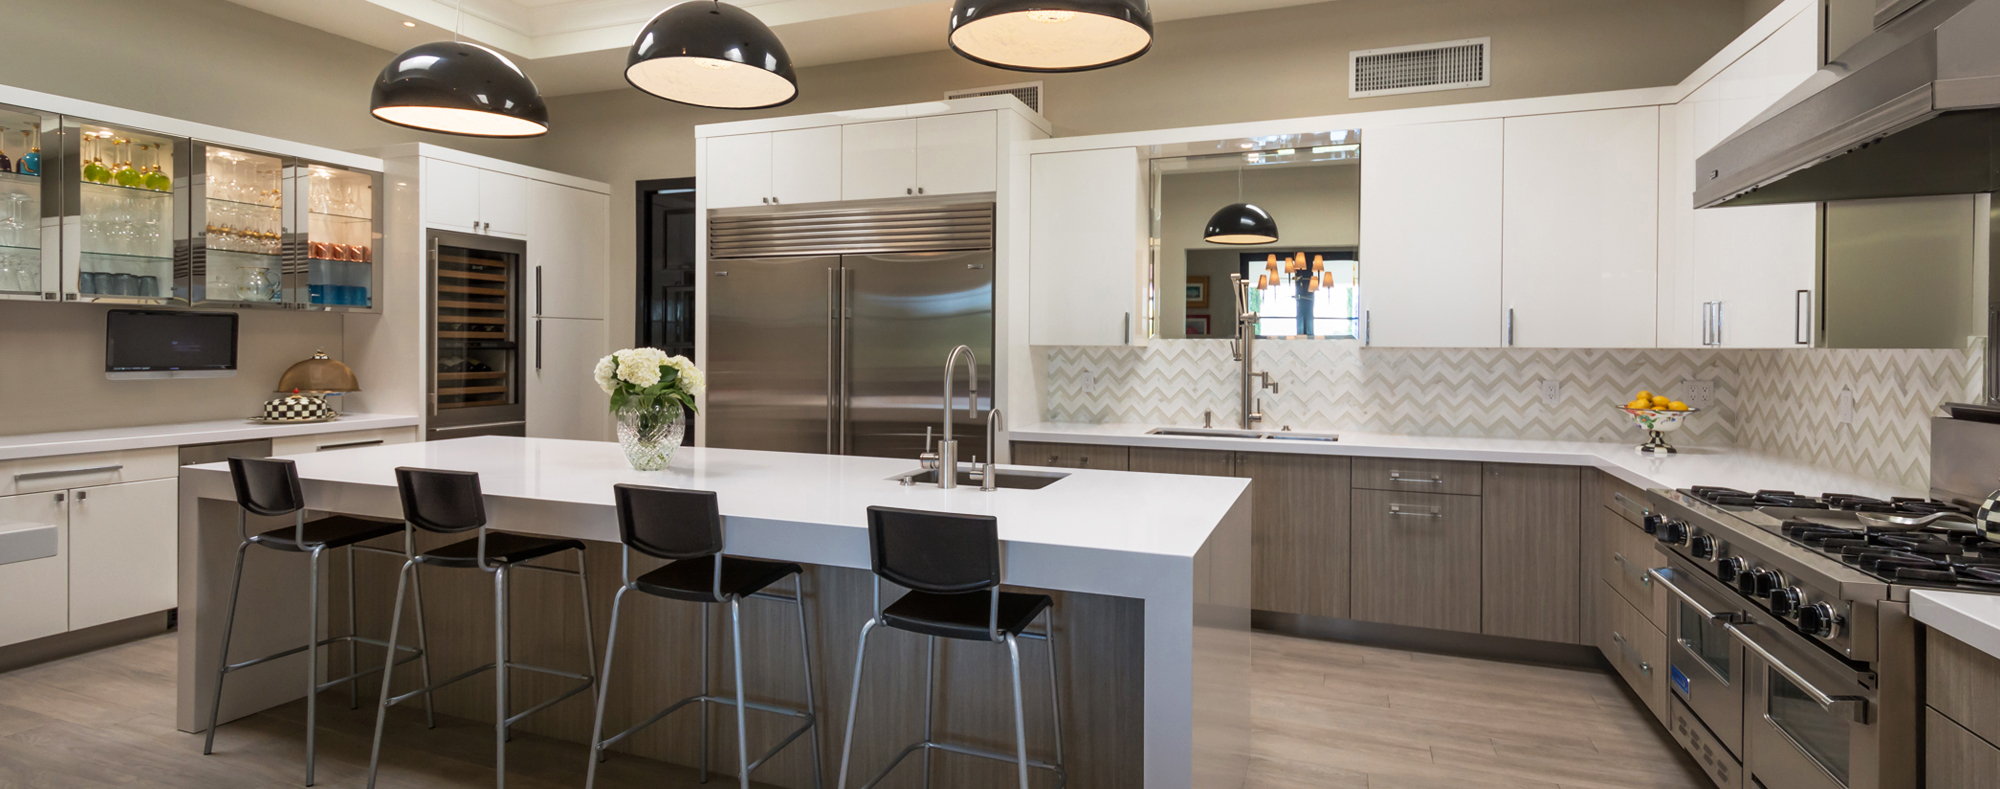 Canyon Cabinetry Kitchen Design Bath Remodel Cabinets Tucson Az